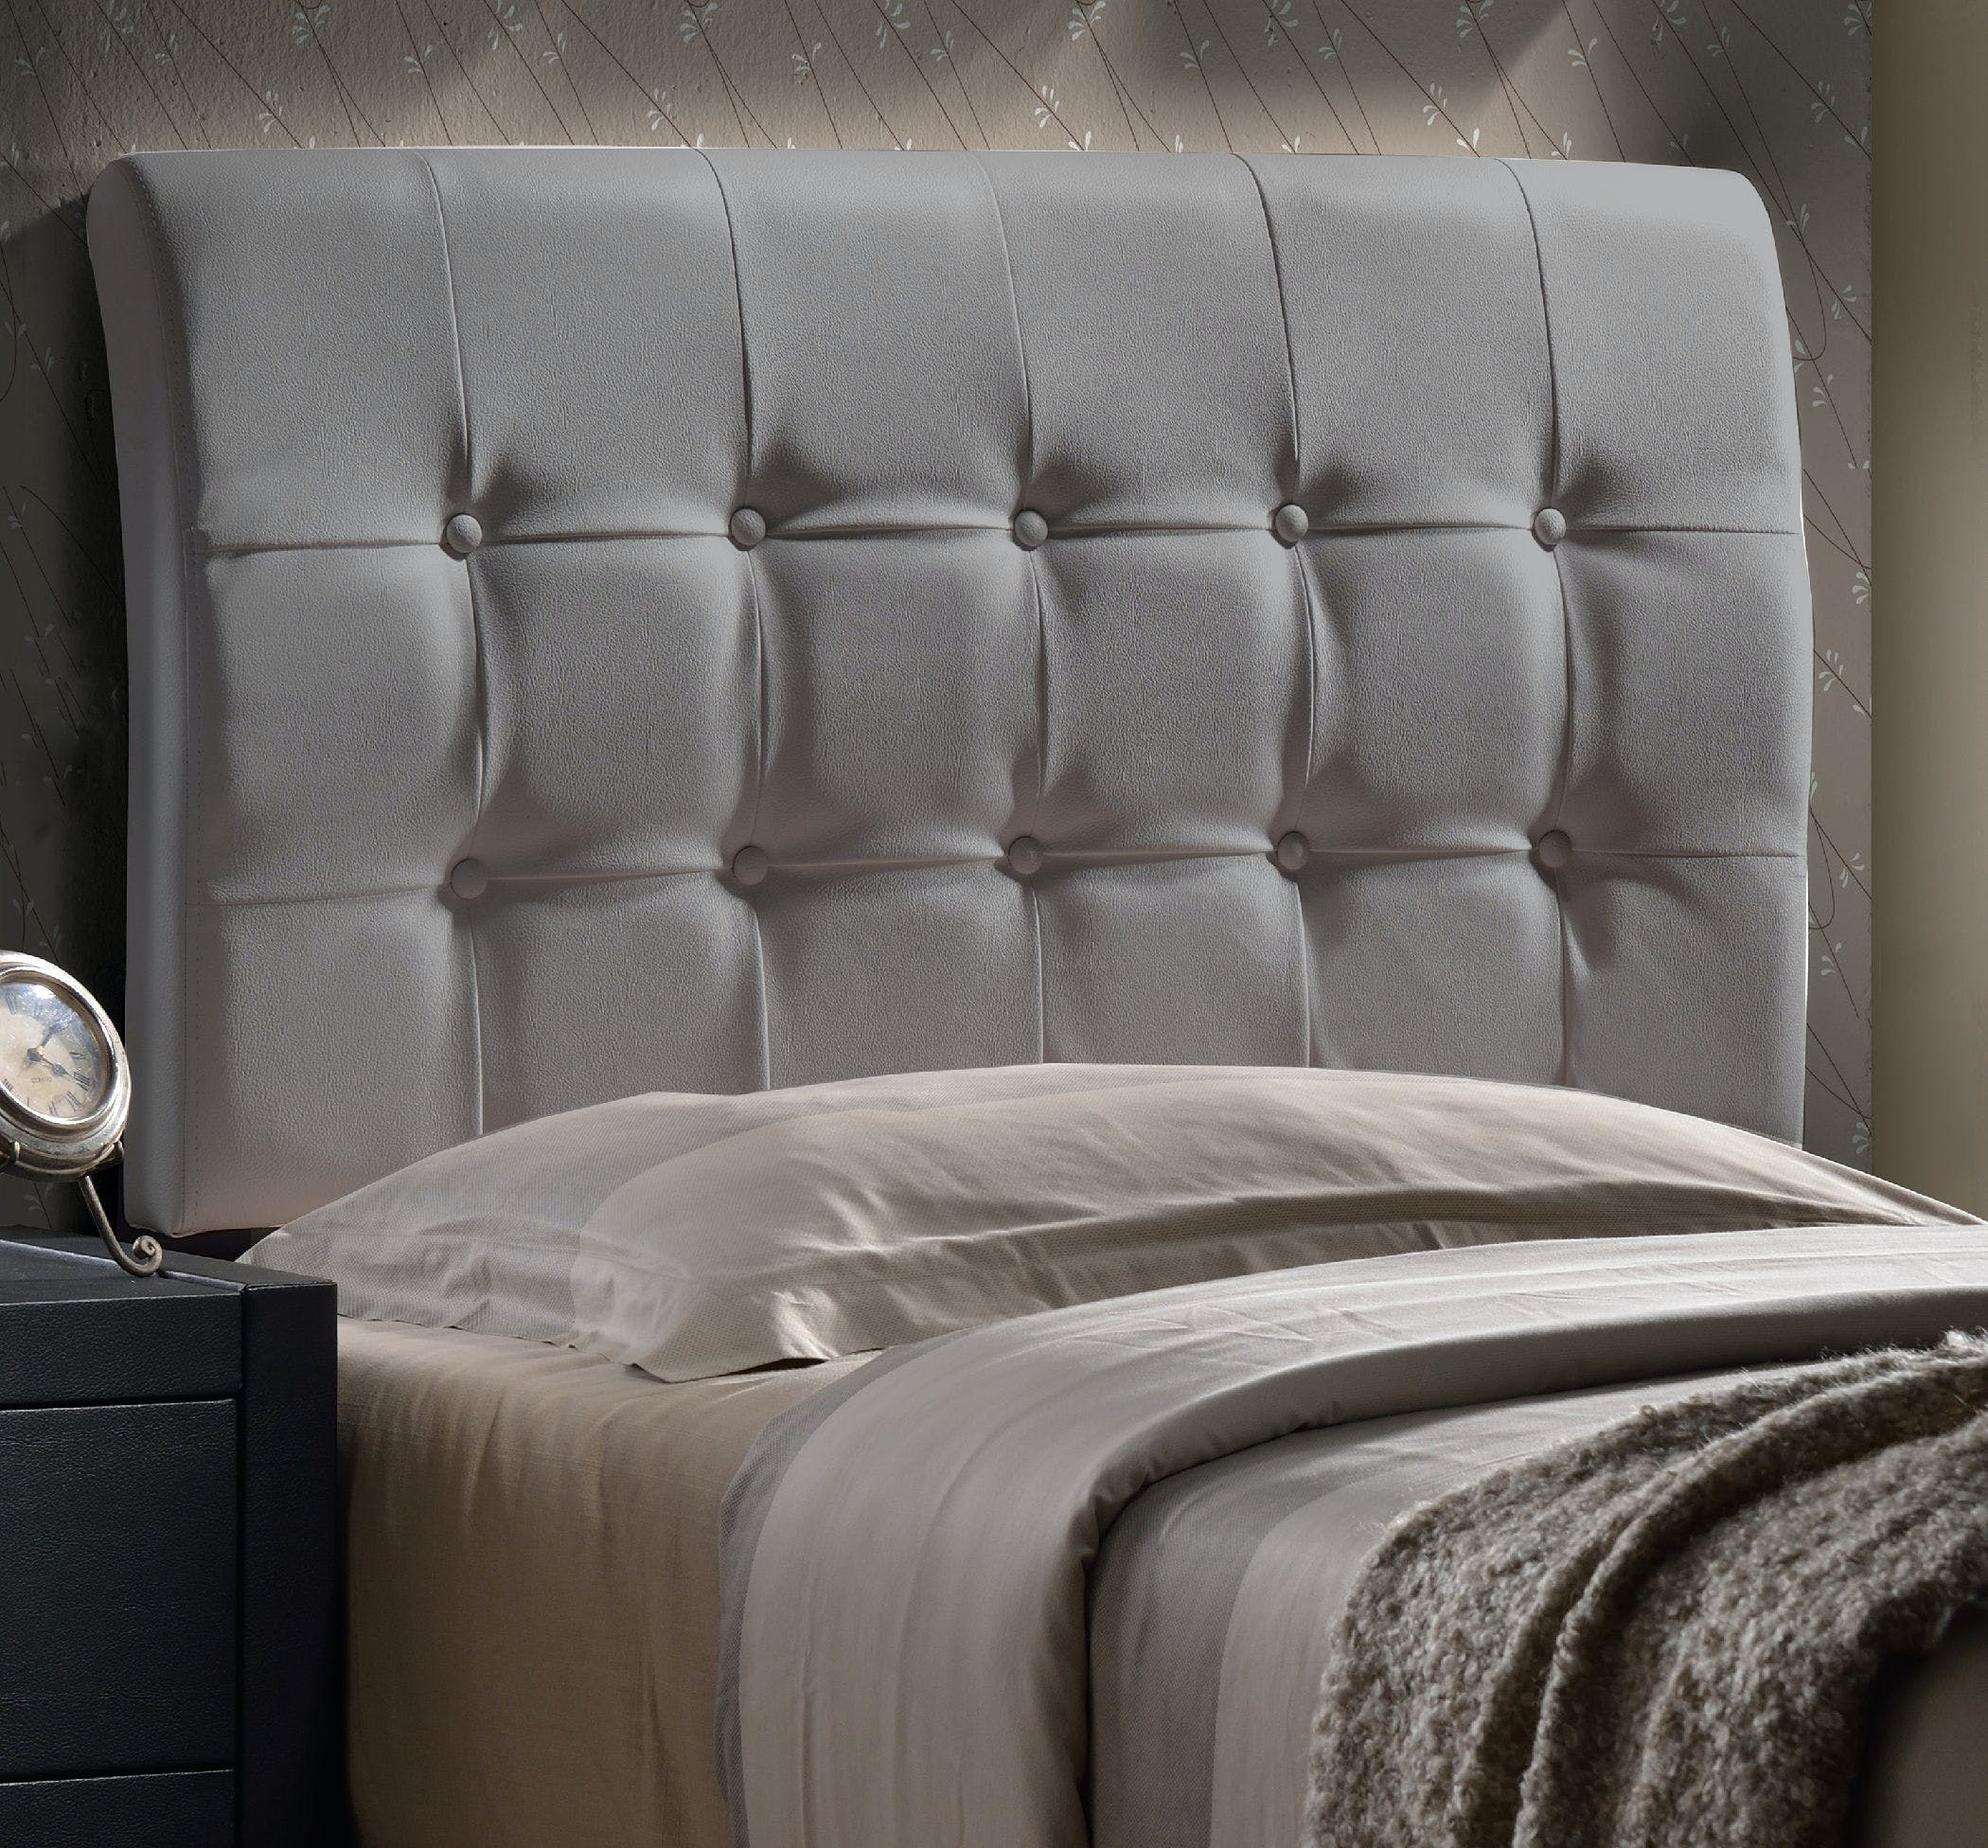 Hillsdale Furniture Youth Lusso Headboard Twin Headboard Frame Included Gray Faux Leather